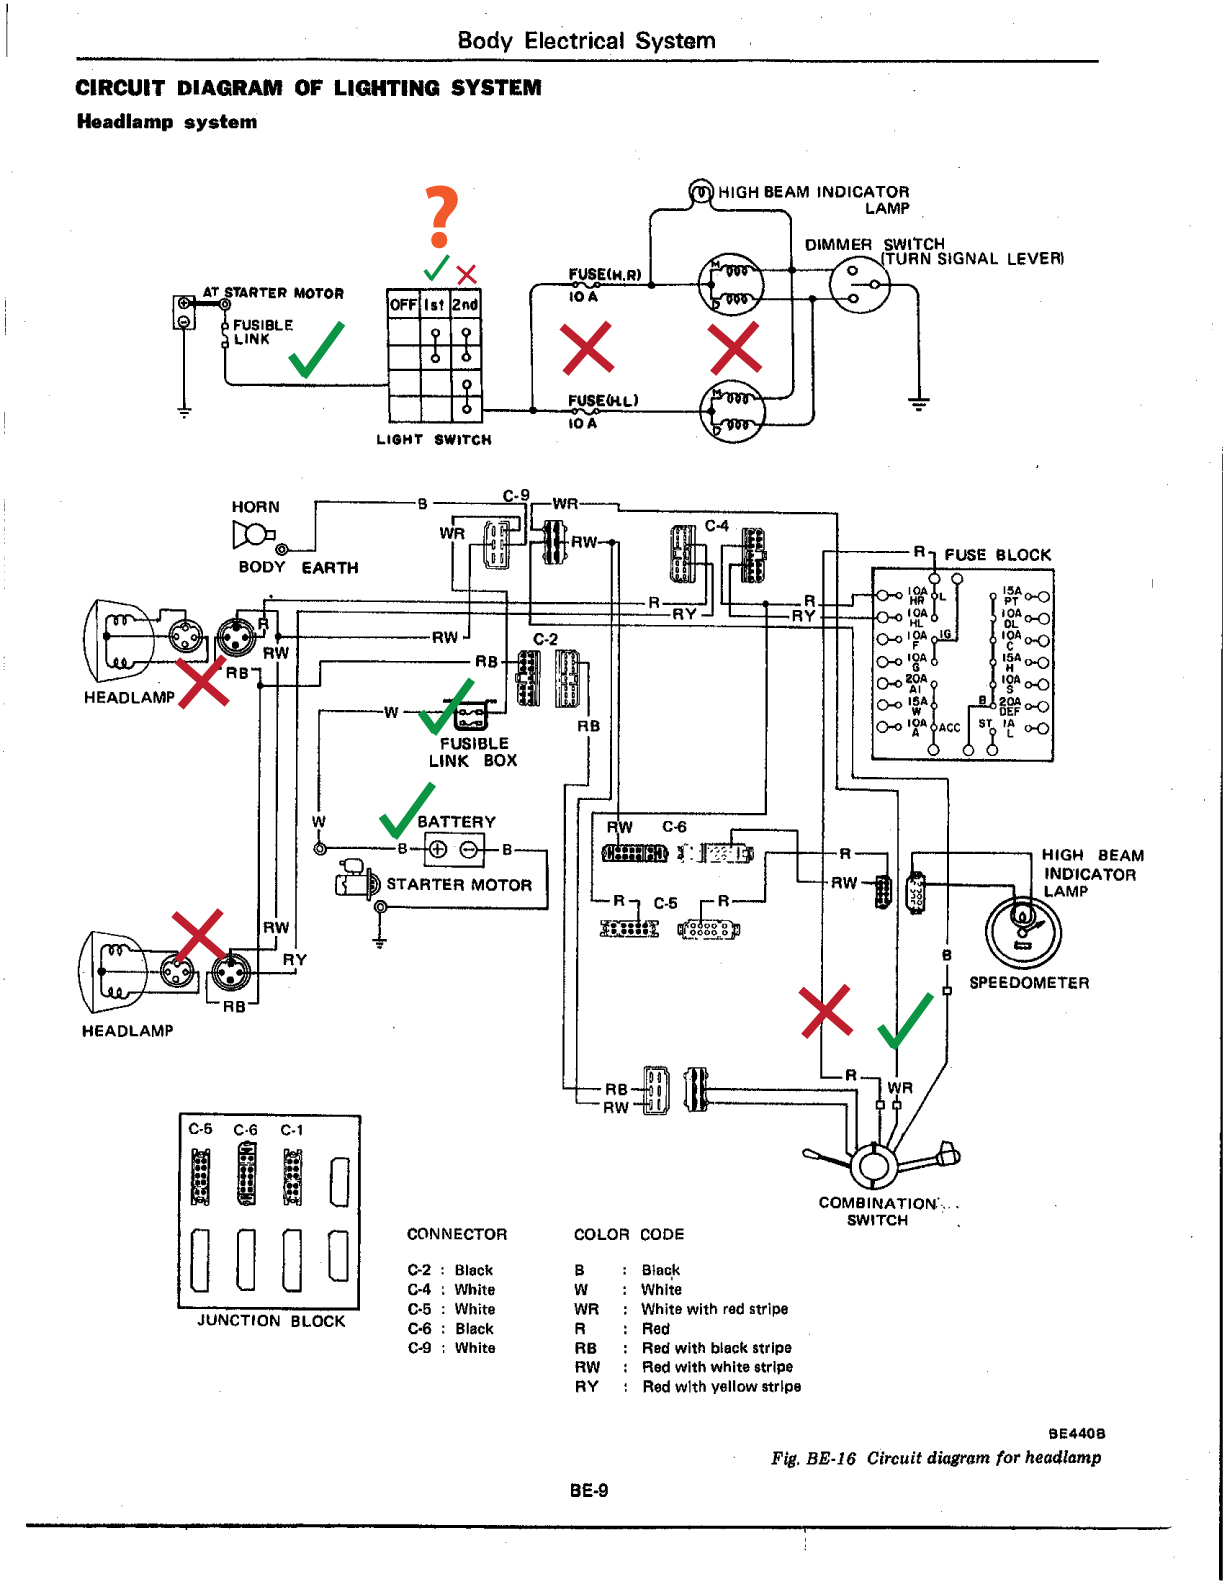 daily datsun 280z fsm be 9 goodbad electrics the daily datsun 75 280z wiring diagram at n-0.co